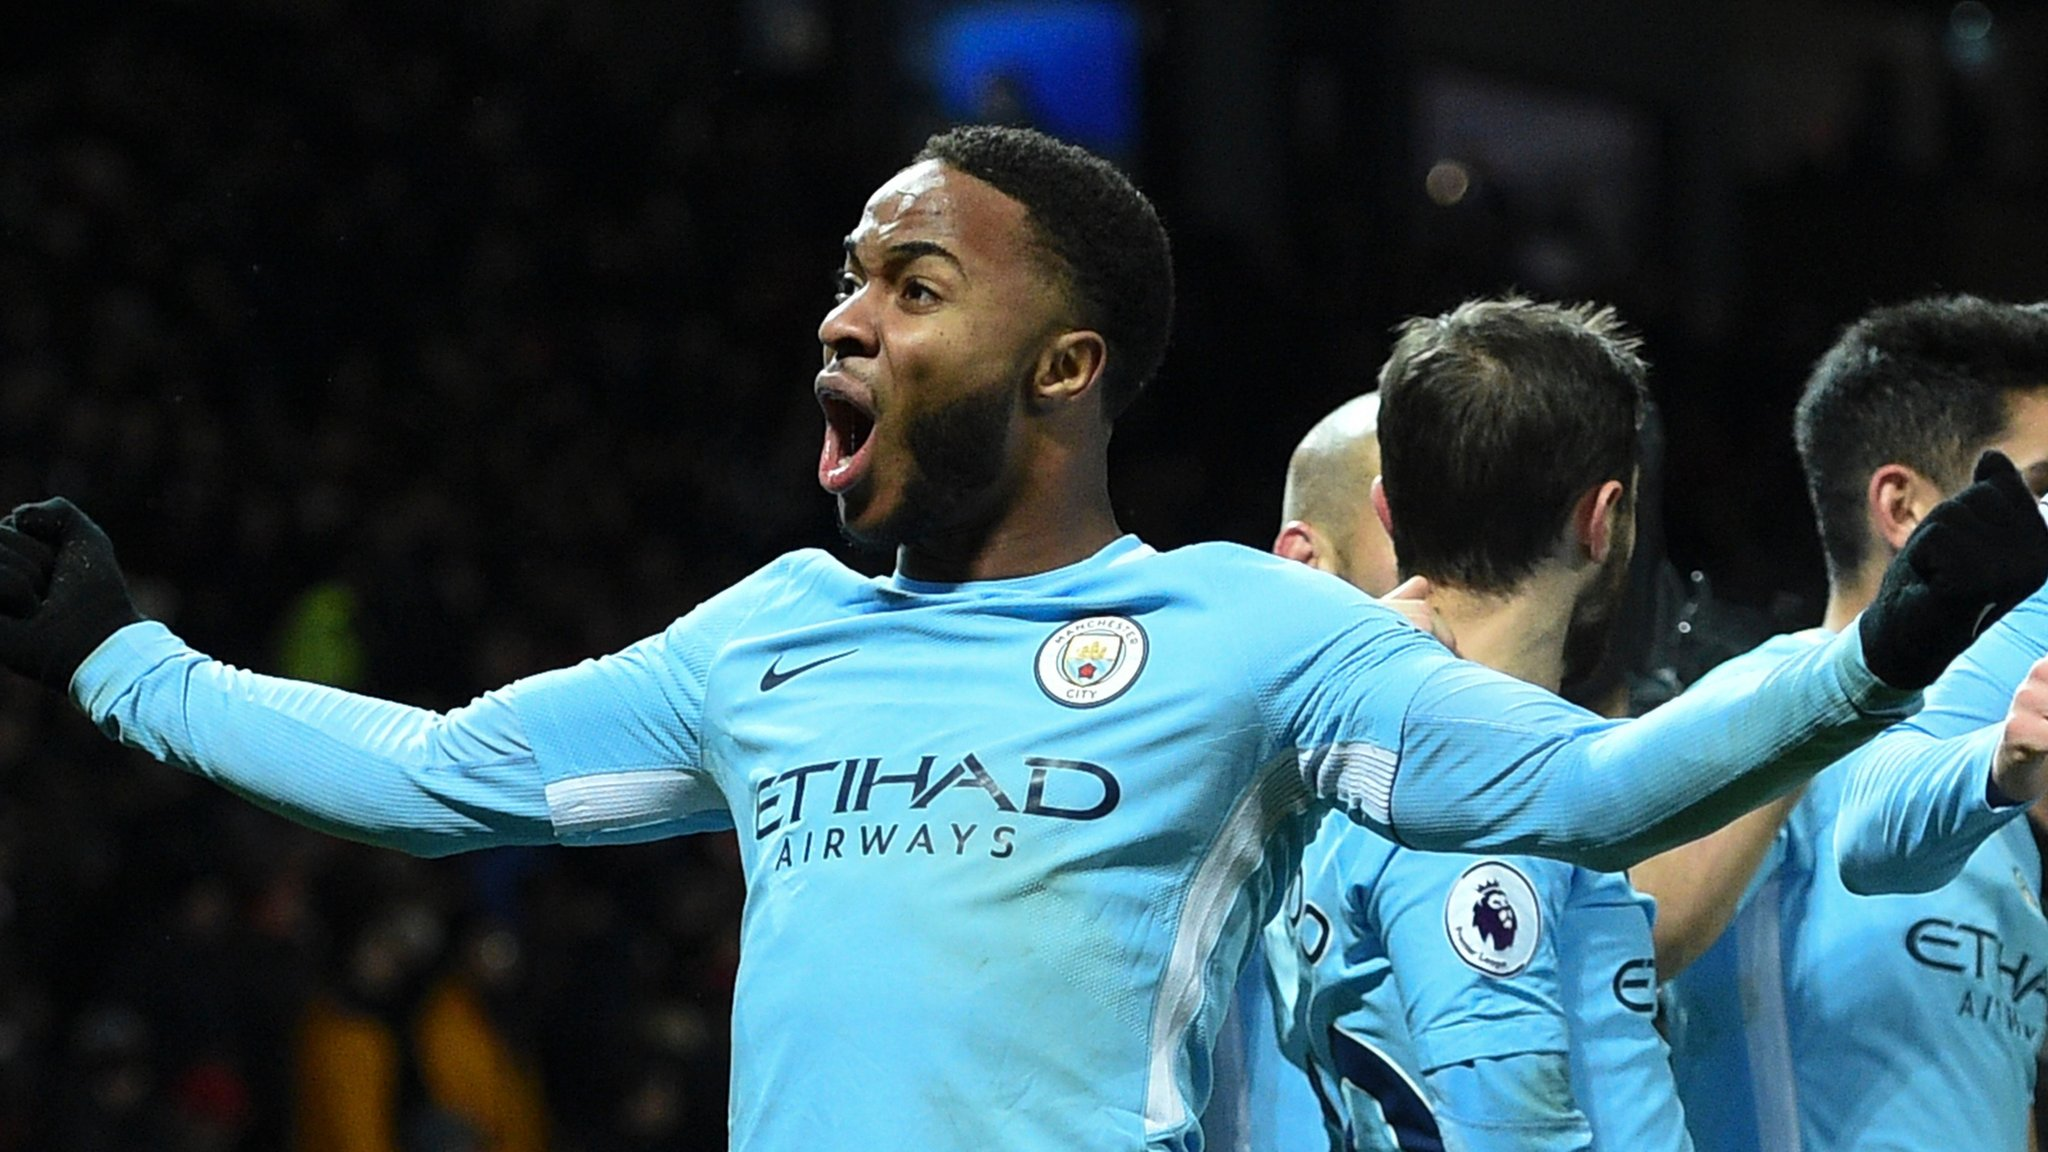 Man City: Premier League title race is over, leaders will not be caught - Alan Shearer